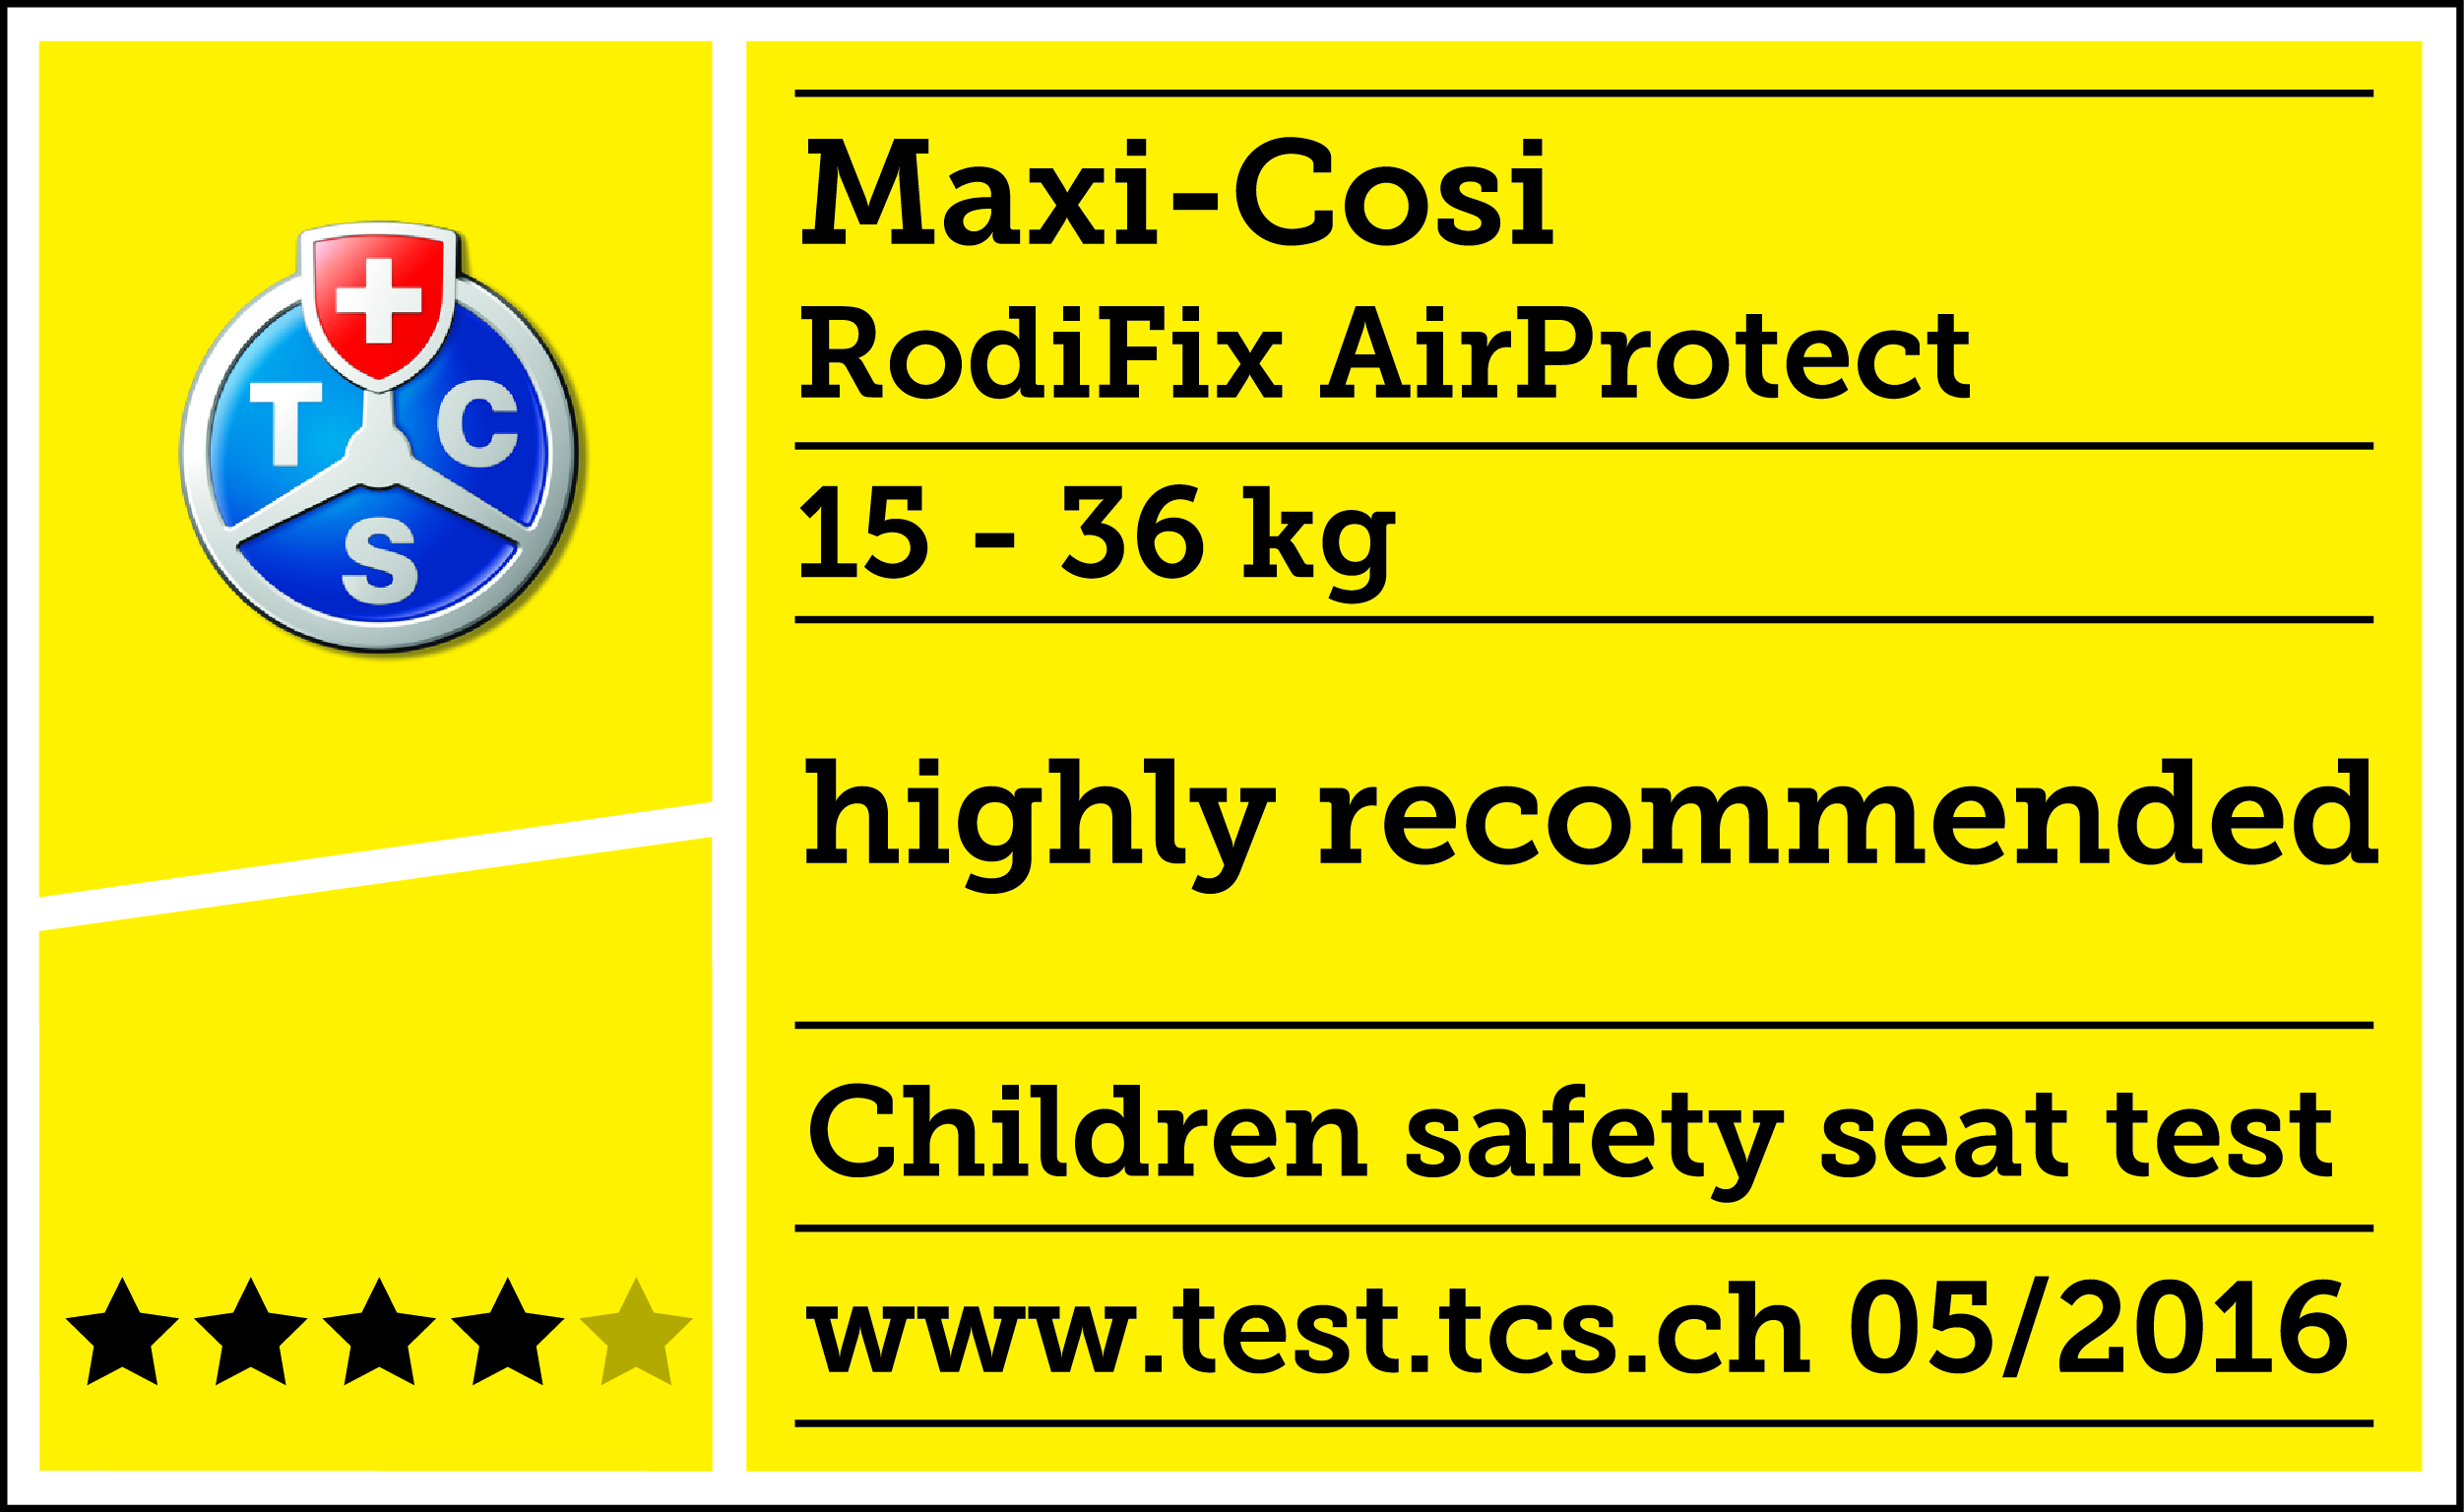 RodiFix AirProtect®